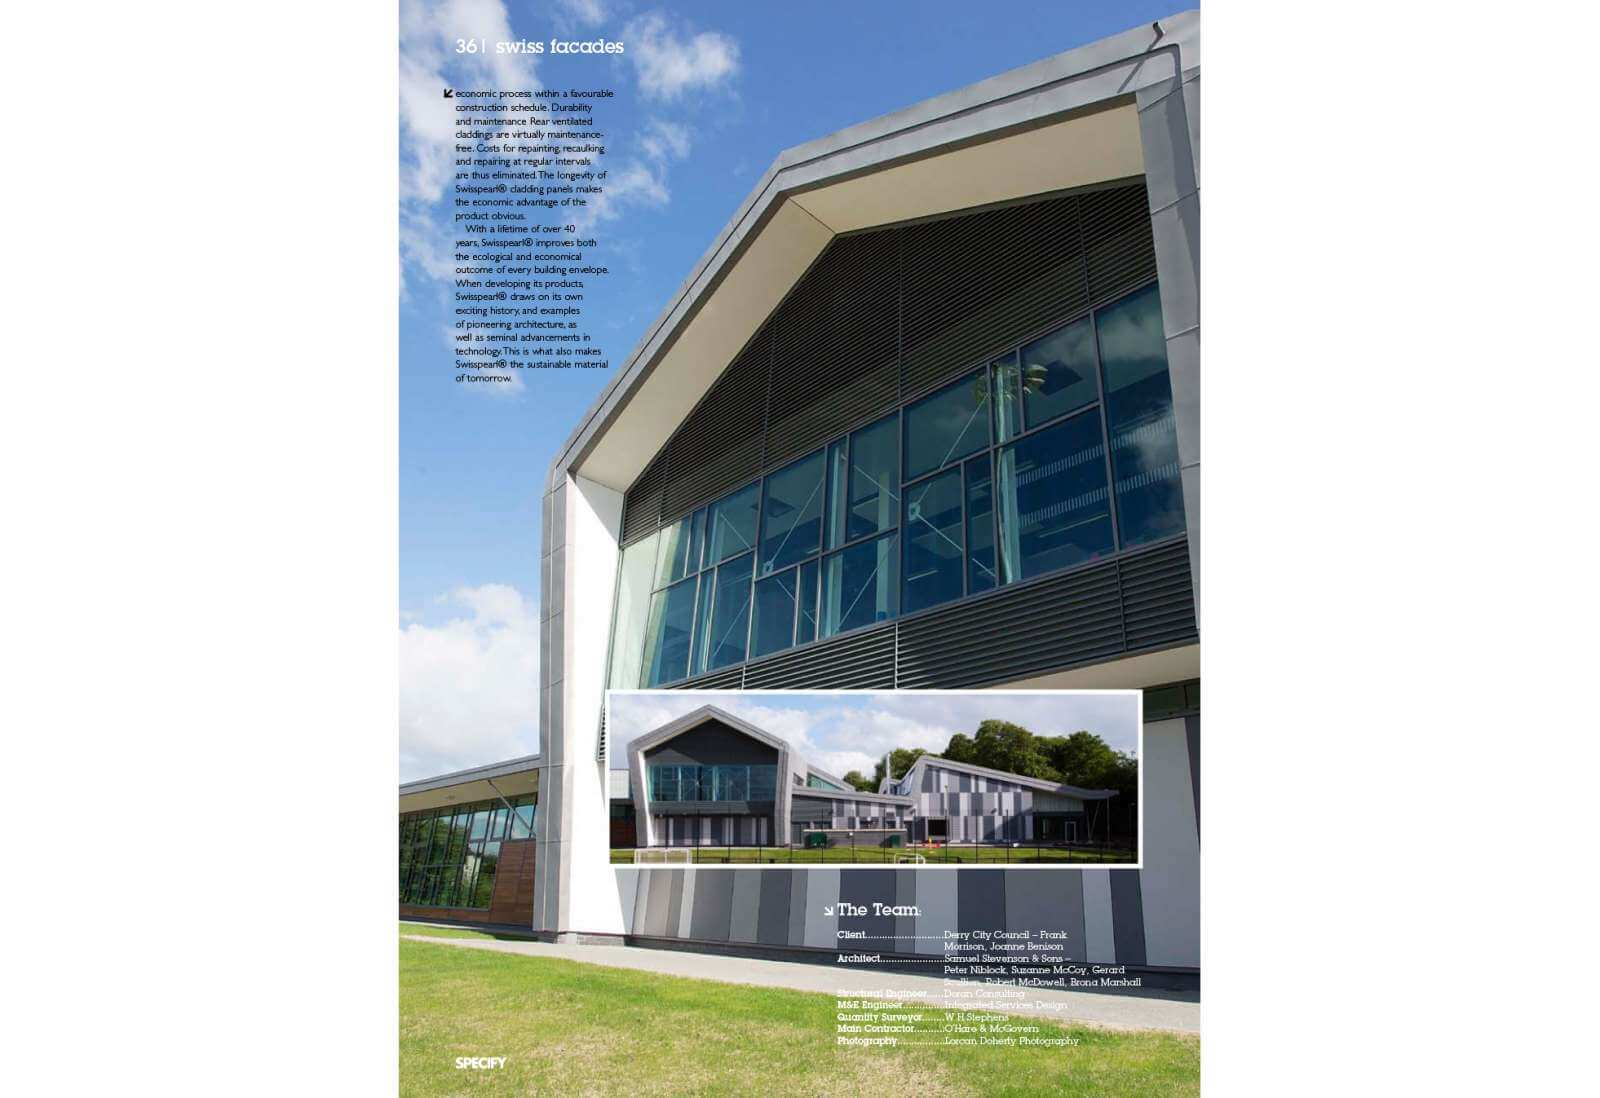 Specify Moyle - cladding by Swiss Facades